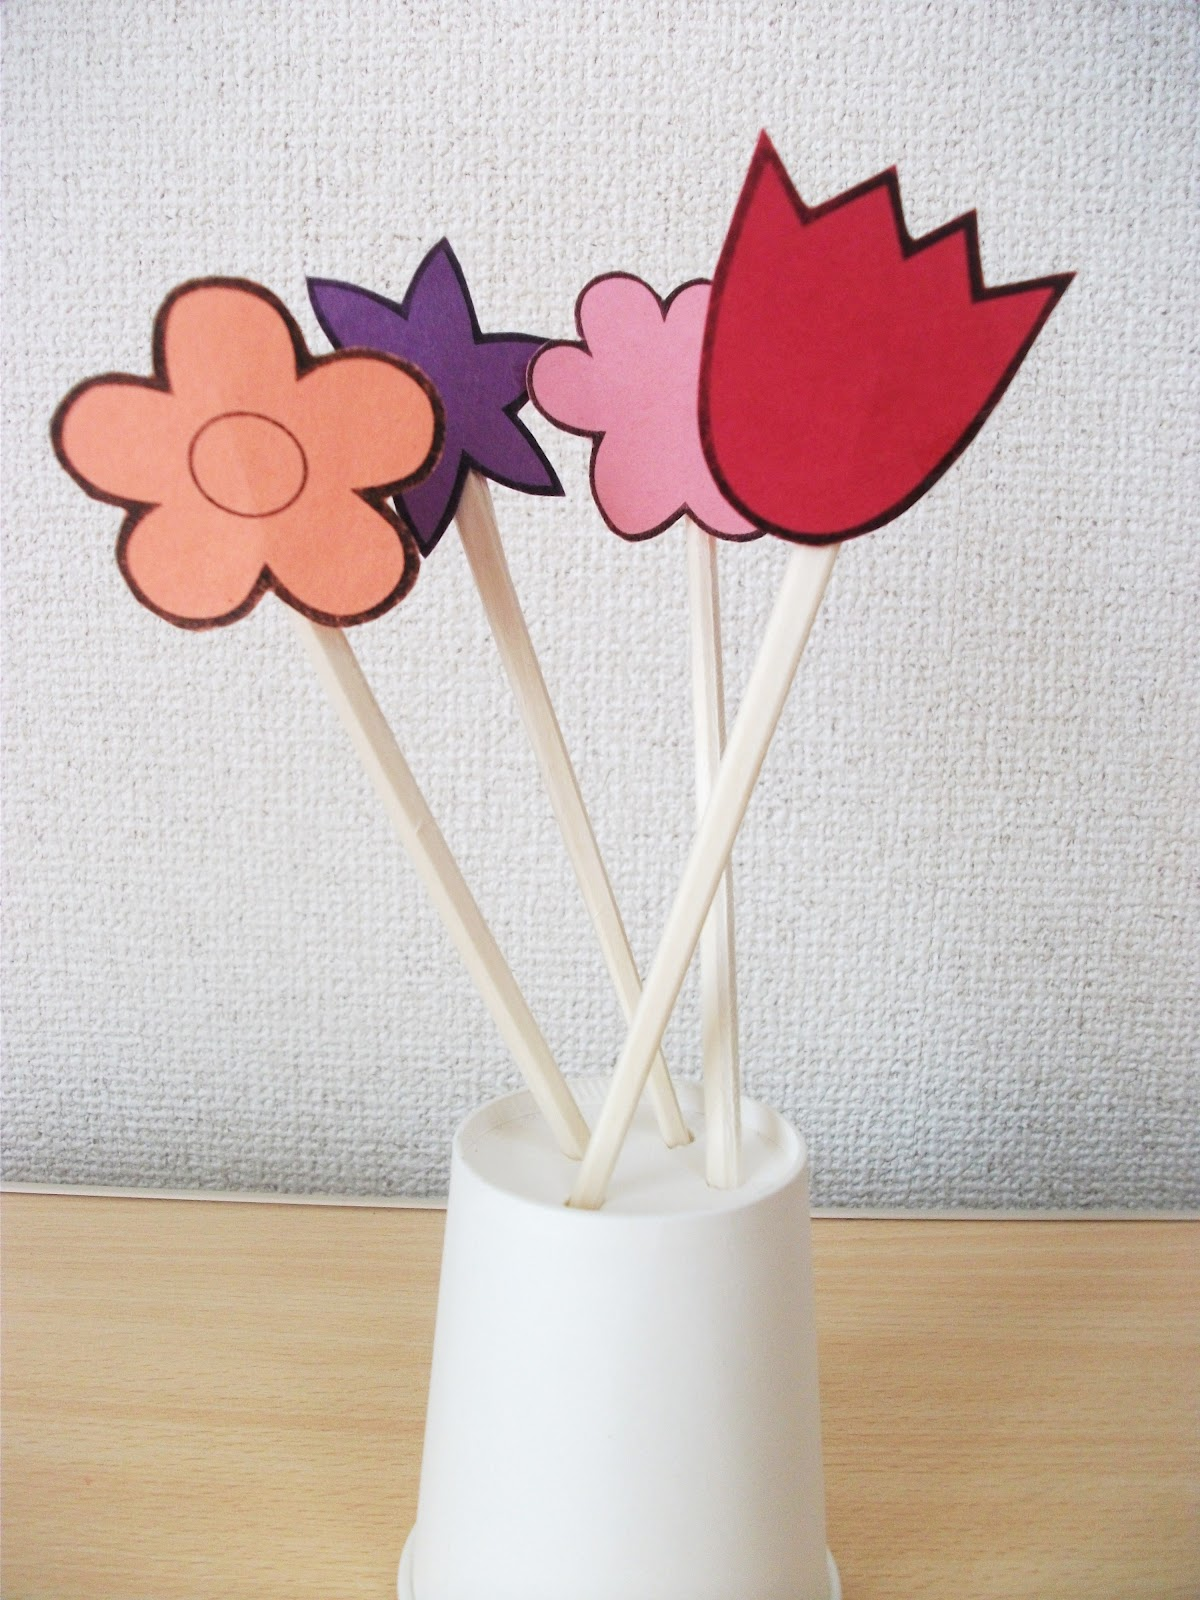 Spring flowers and vase chopsticks craft preschool education for kids spring flowers and vase chopsticks craft mightylinksfo